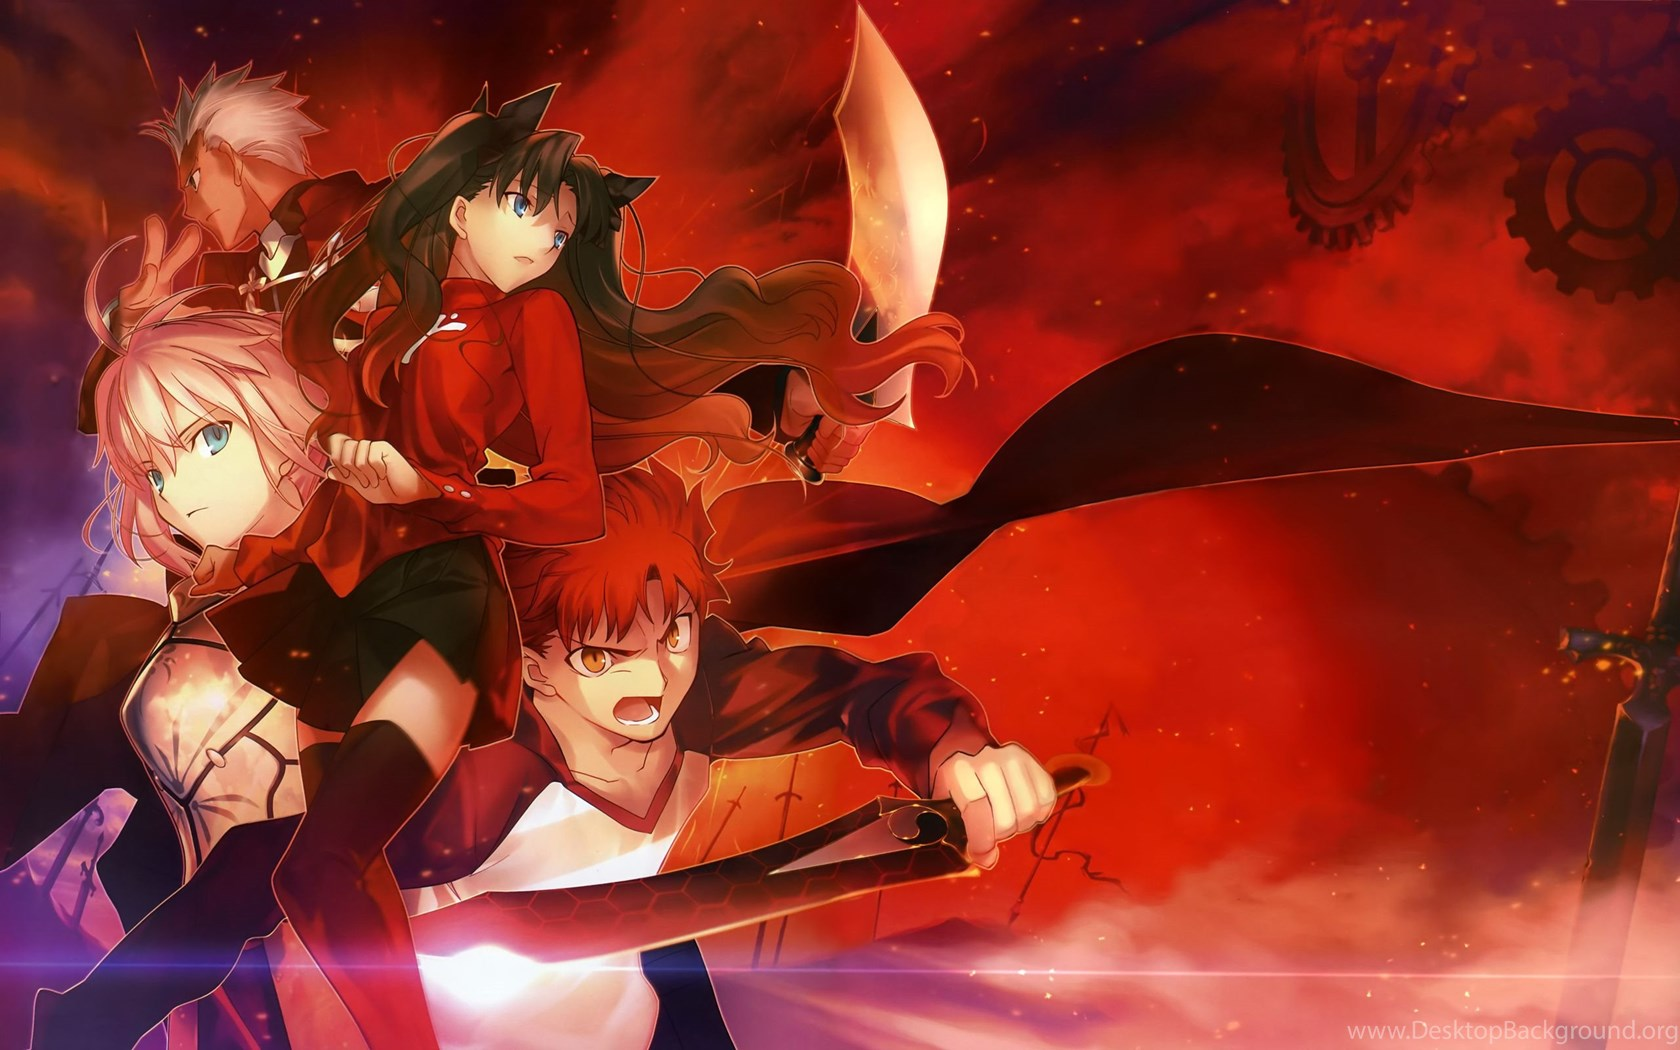 Fate Stay Night Anime Wallpapers 2560x1600 1429590 Desktop Background